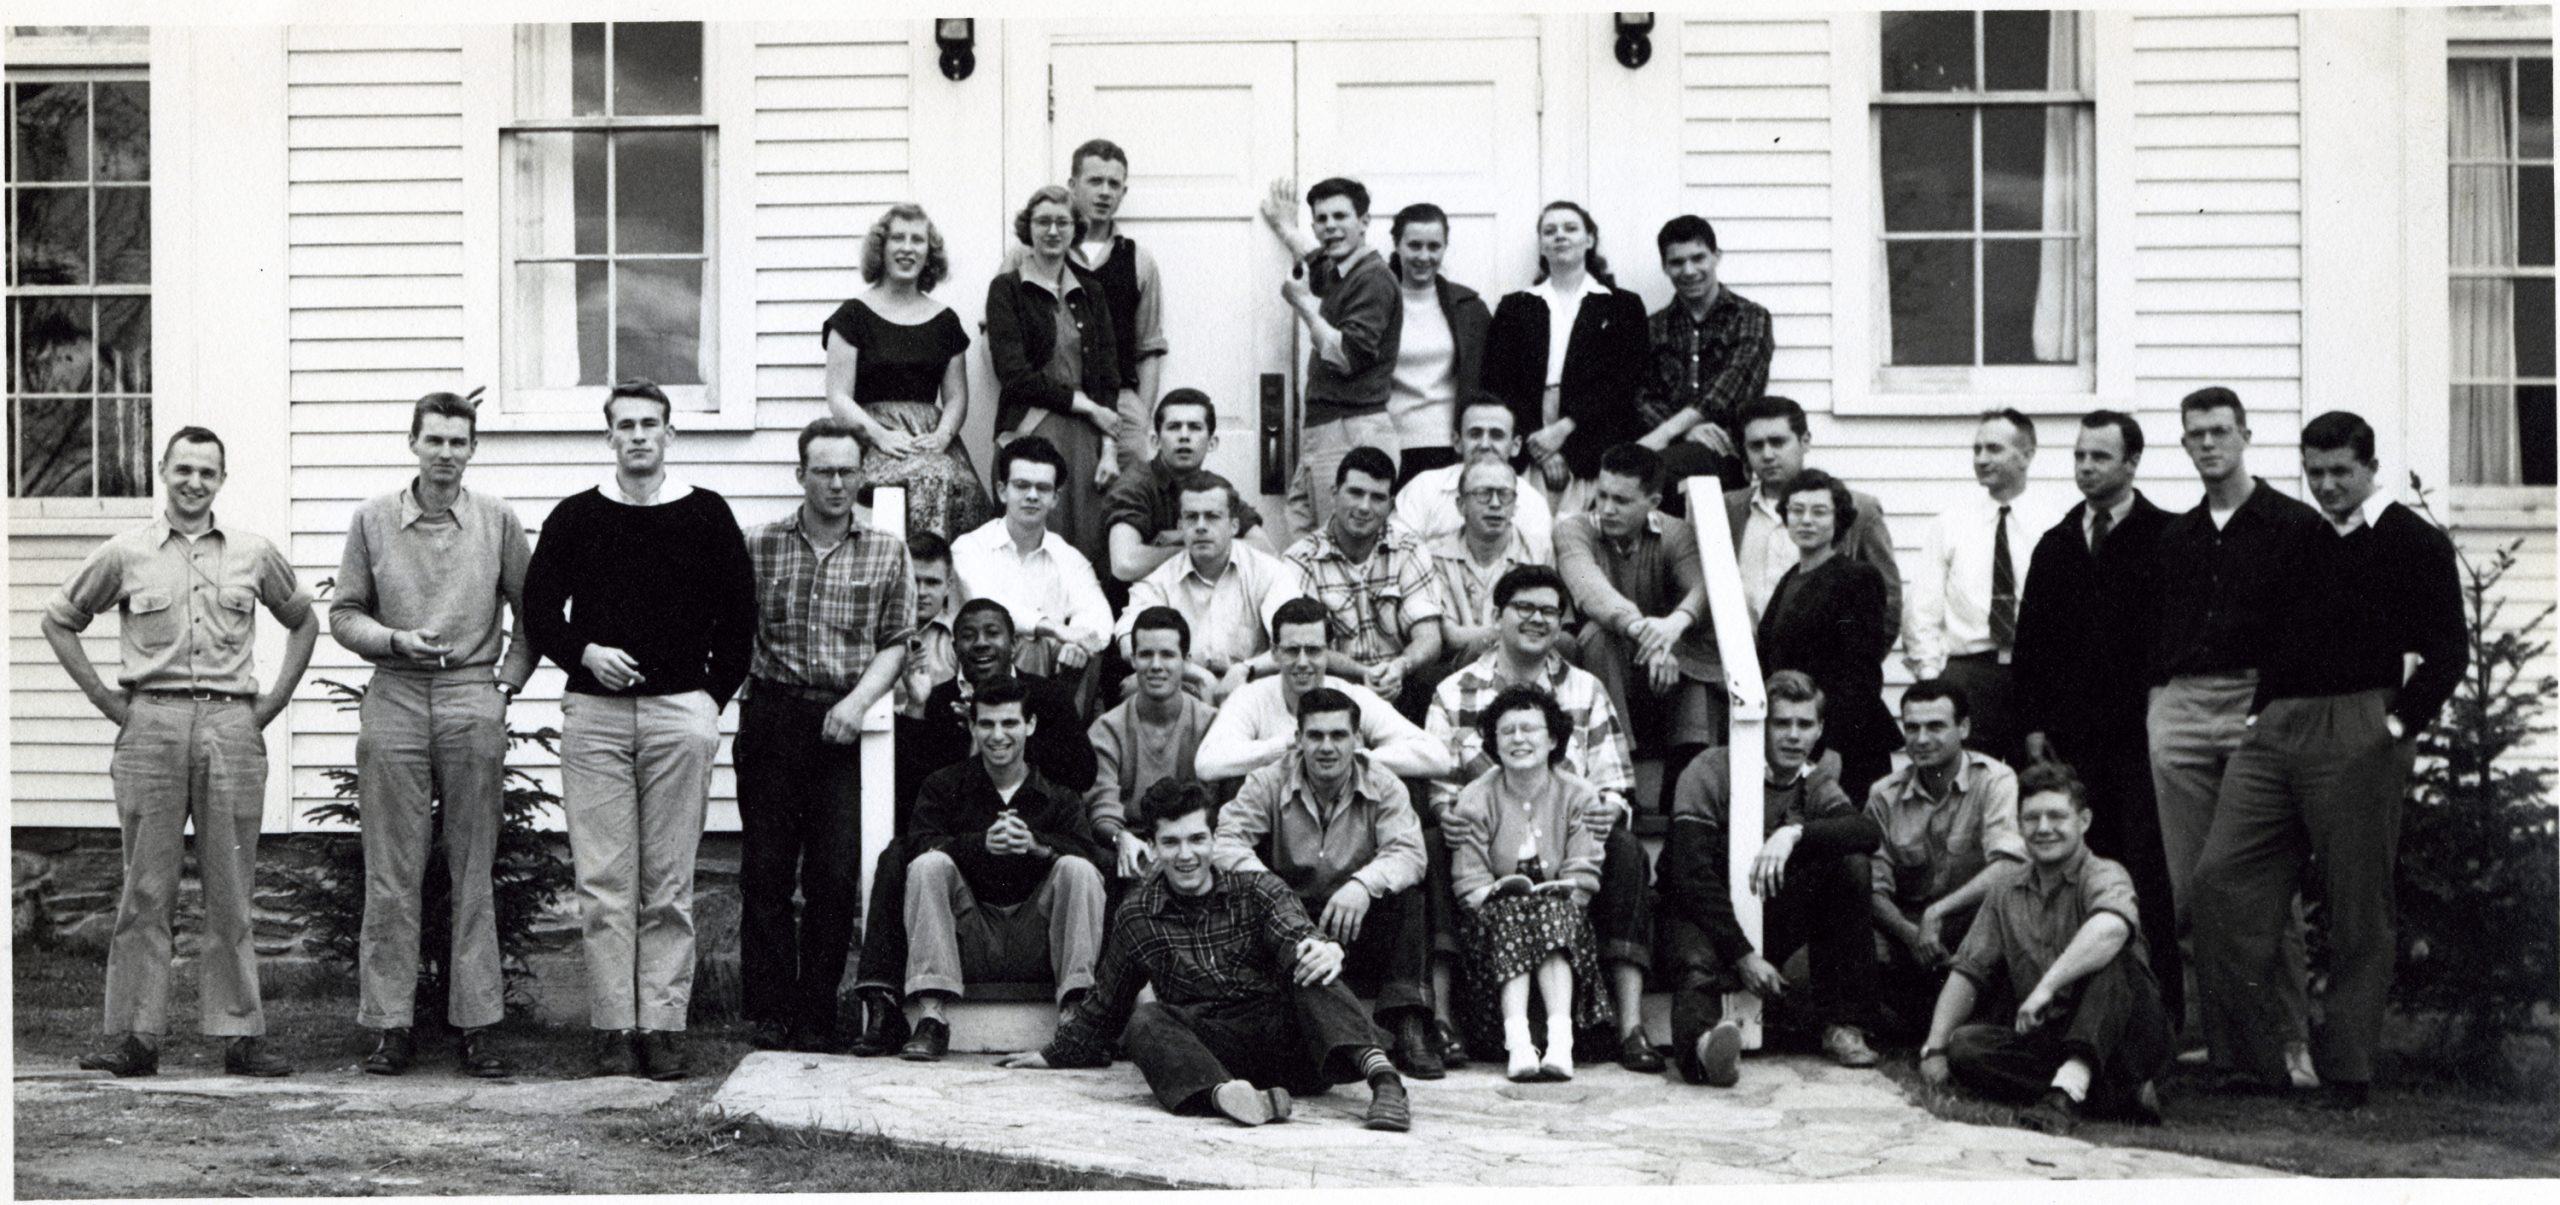 Group in front of Marlboro